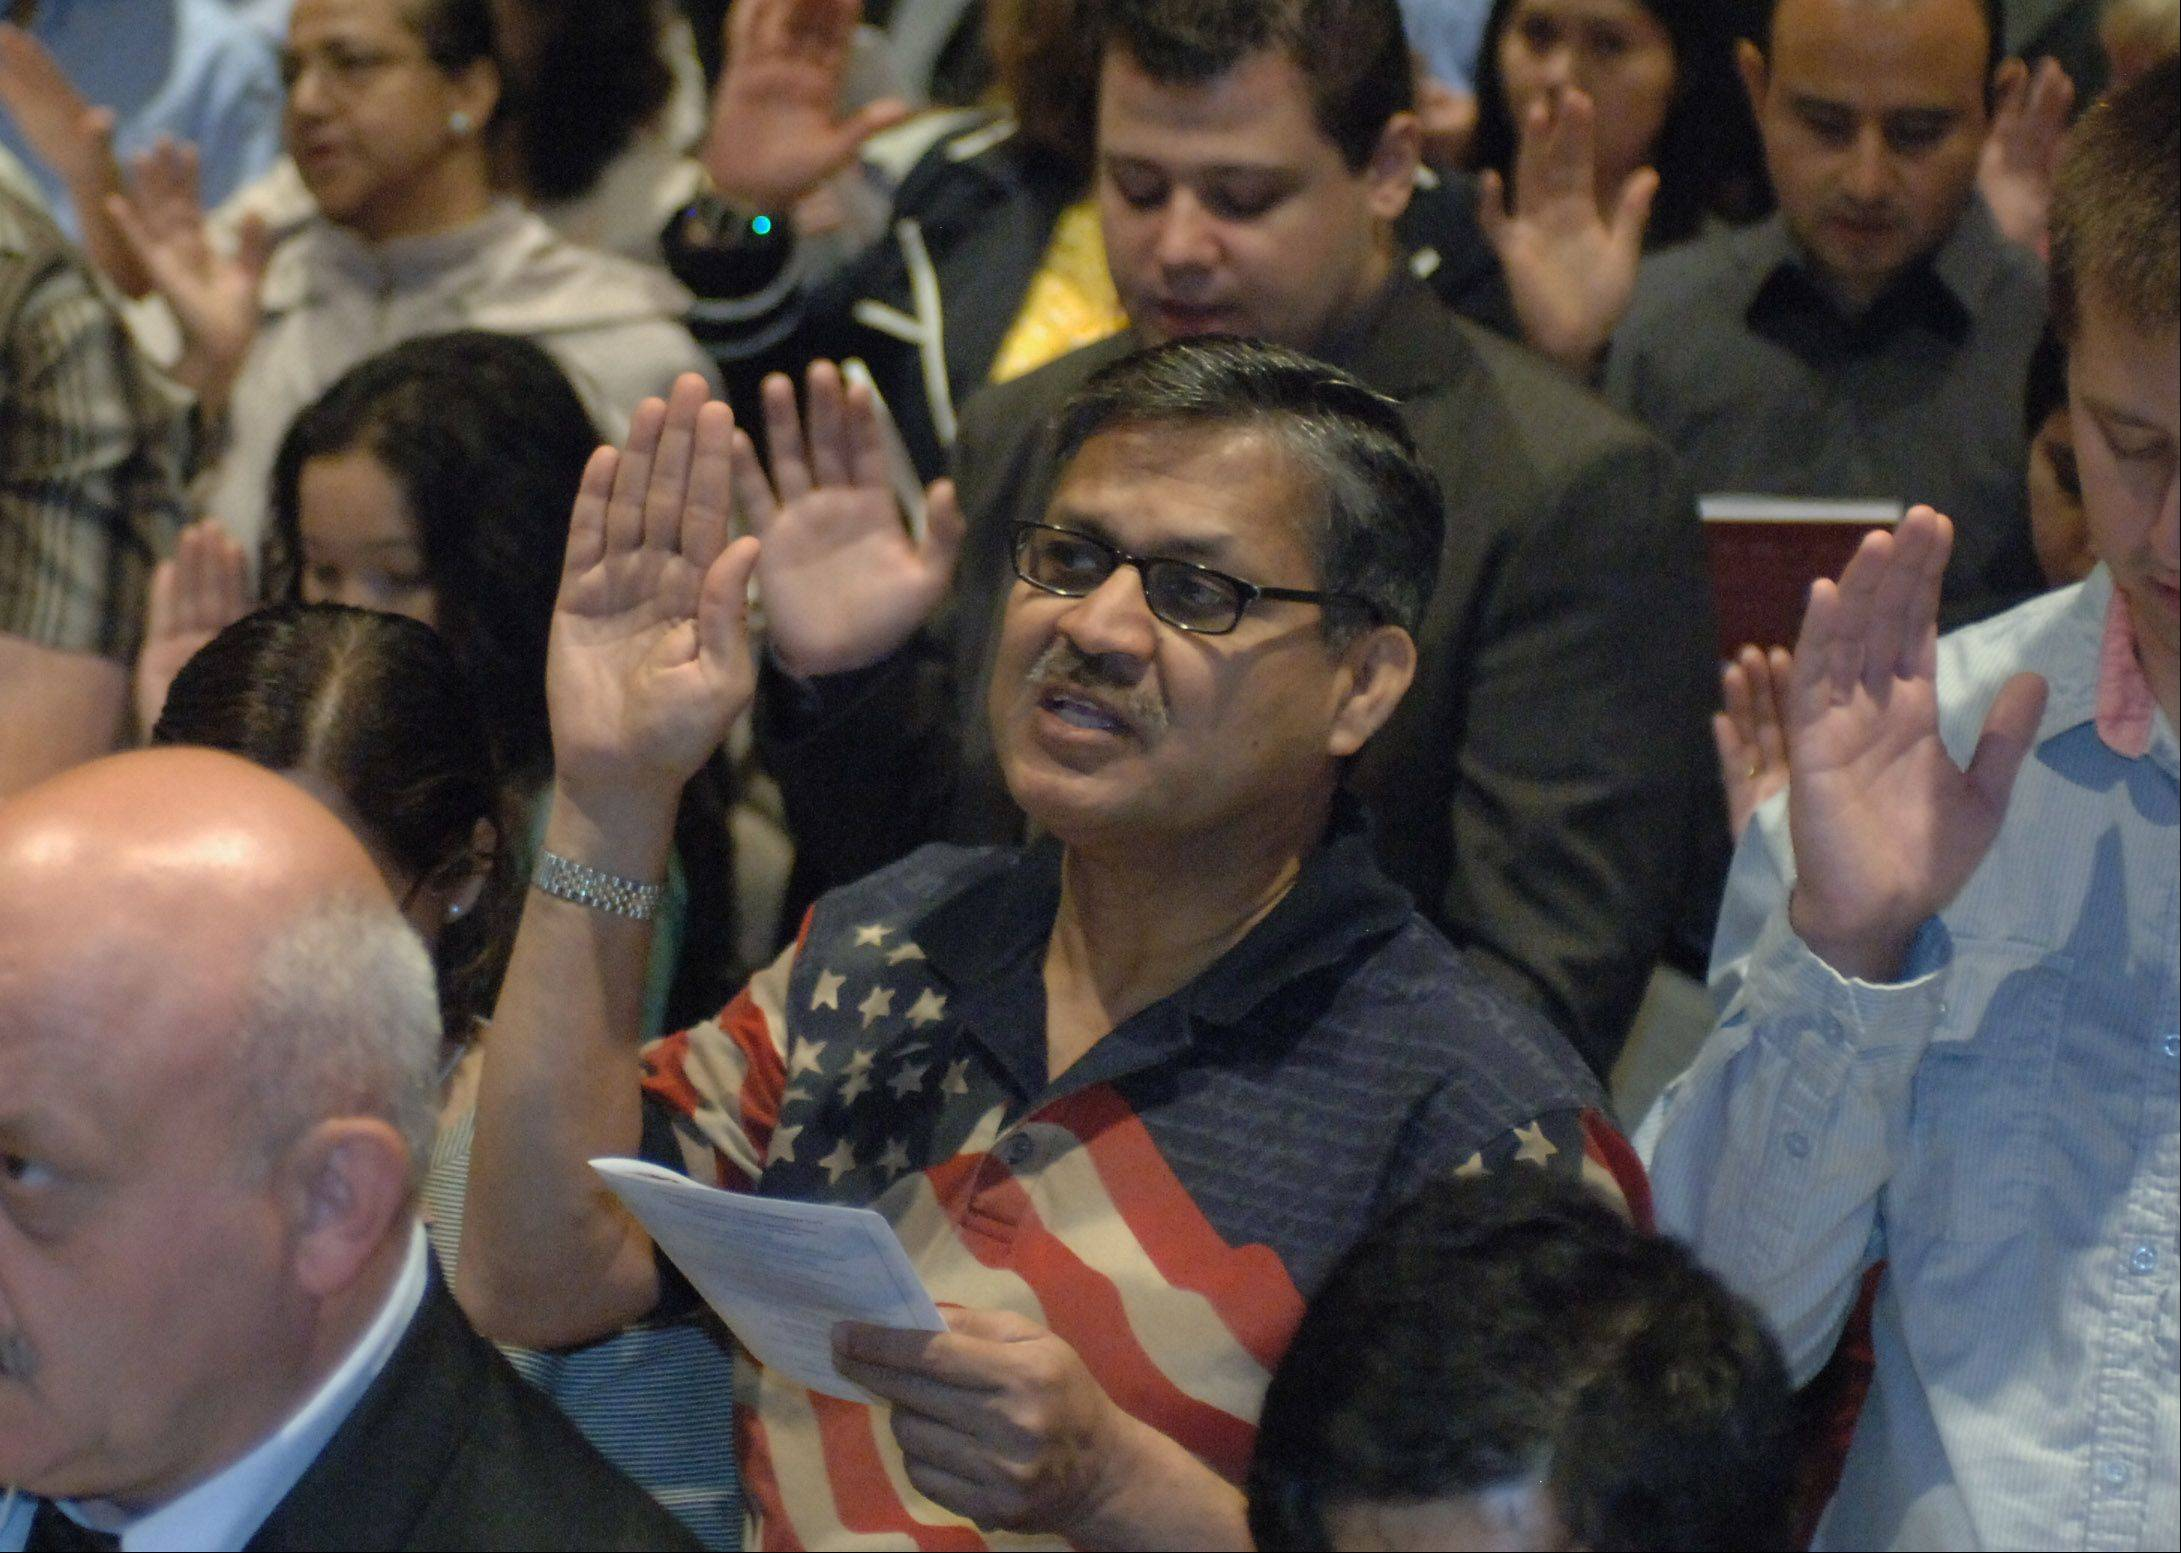 Basith Meer of Lincolnshire says the Oath of Allegiance during the Naturalization Oath Ceremony Monday at the Round Lake Beach Cultural & Civic Center. Mano a Mano Family Resource Center in partnership with the Round Lake Area Public Library will hosted the event.